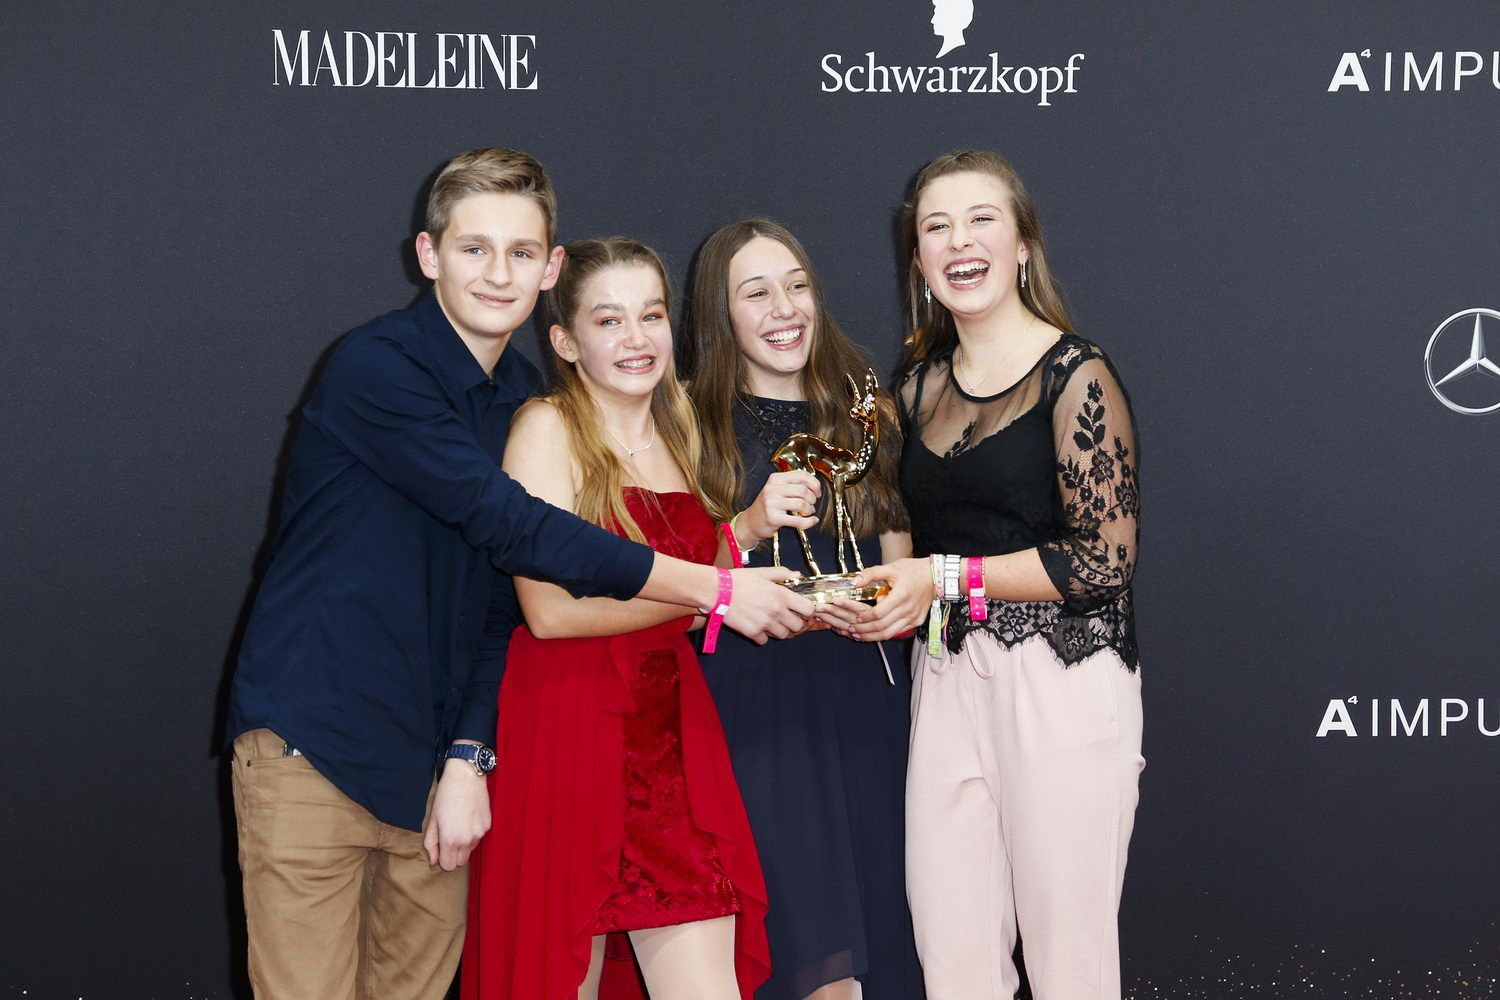 MADELEINE At Bambi Awards 2019 - Winners Board